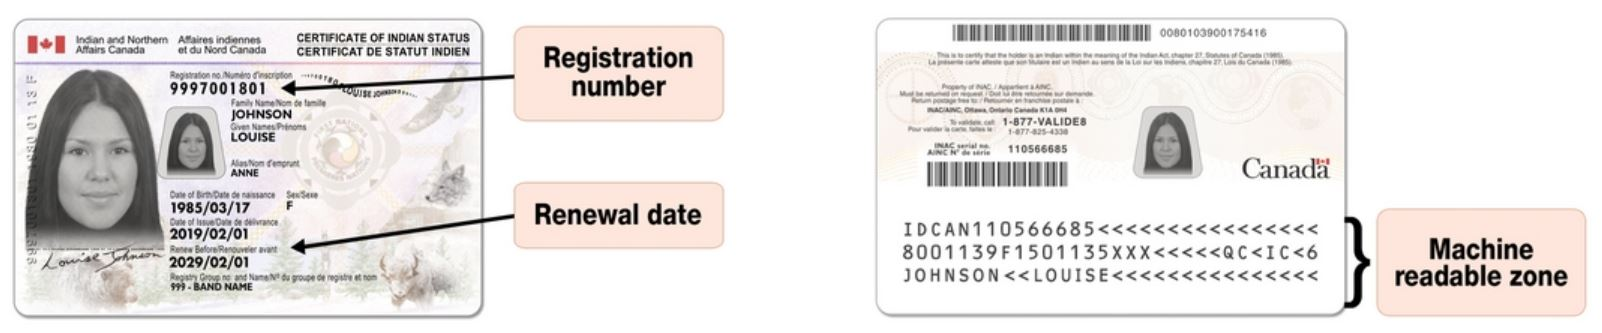 Sample Secure Certificate of Indian Status Card, issued centrally by Indigenous Services Canada (2019). Credits to: ISC, Government of Canada.